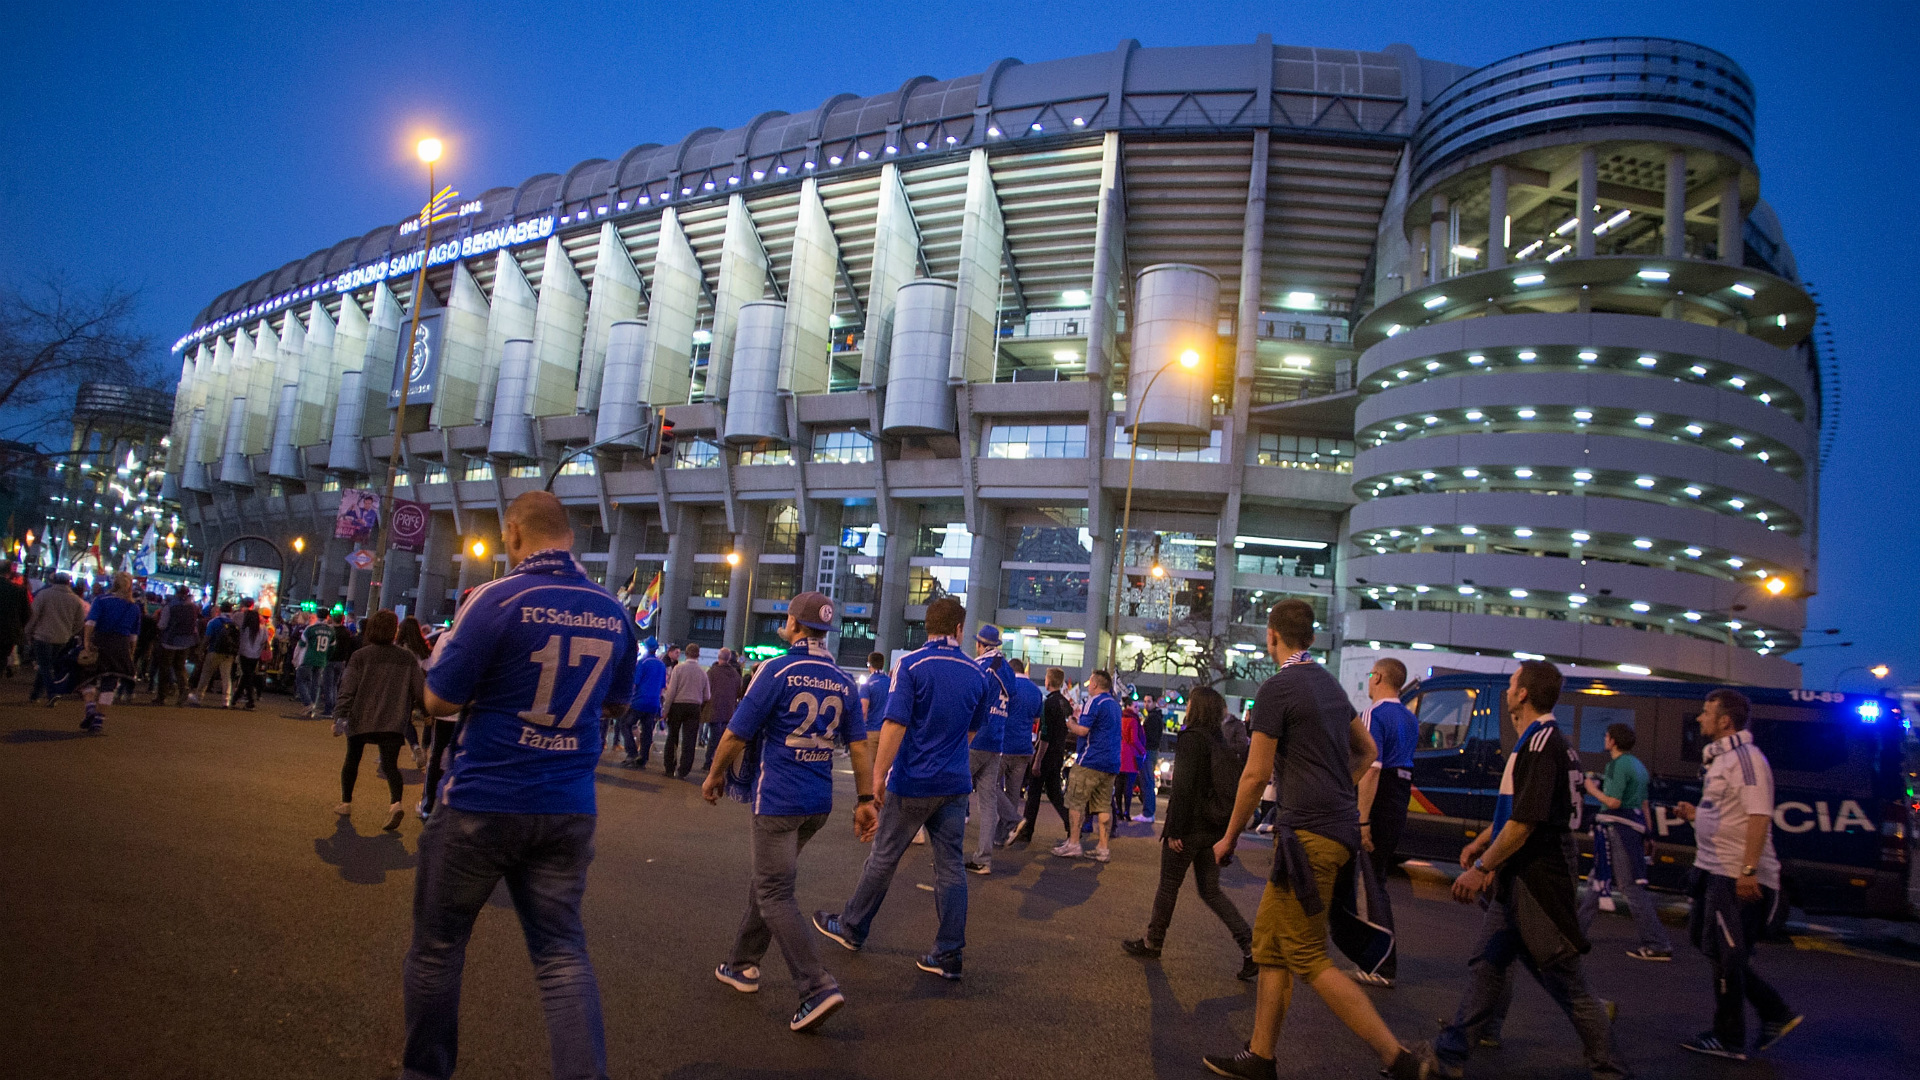 fans real madrid schalke 04 uefa champions league 03102015